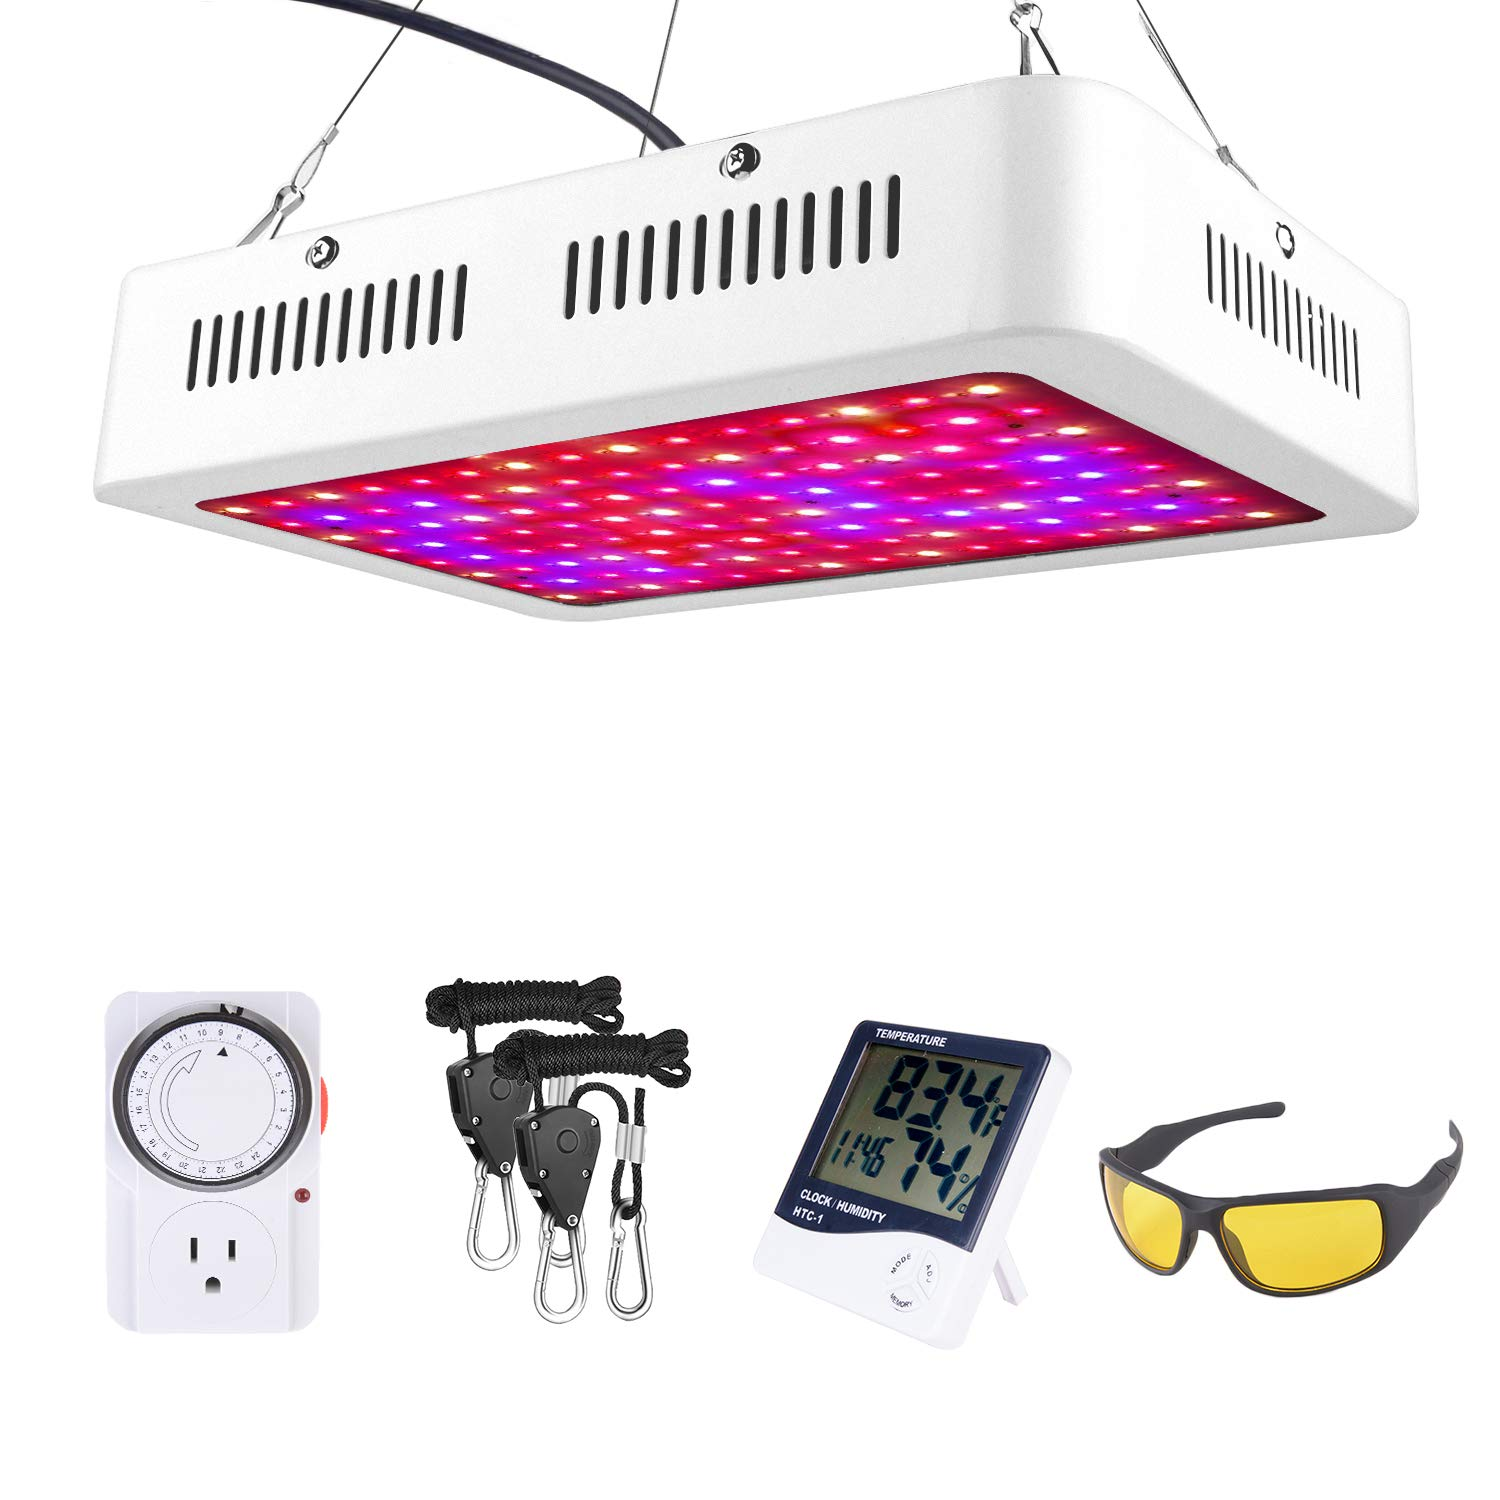 HOMENOTE Led Plant Grow Light for Indoor Plants, 1000W Grow Lamp with Thermometer Humidity Monitor, Adjustable Rope and Goggle, Full Spectrum Plant Light for Flower All Phases of Plant Growth